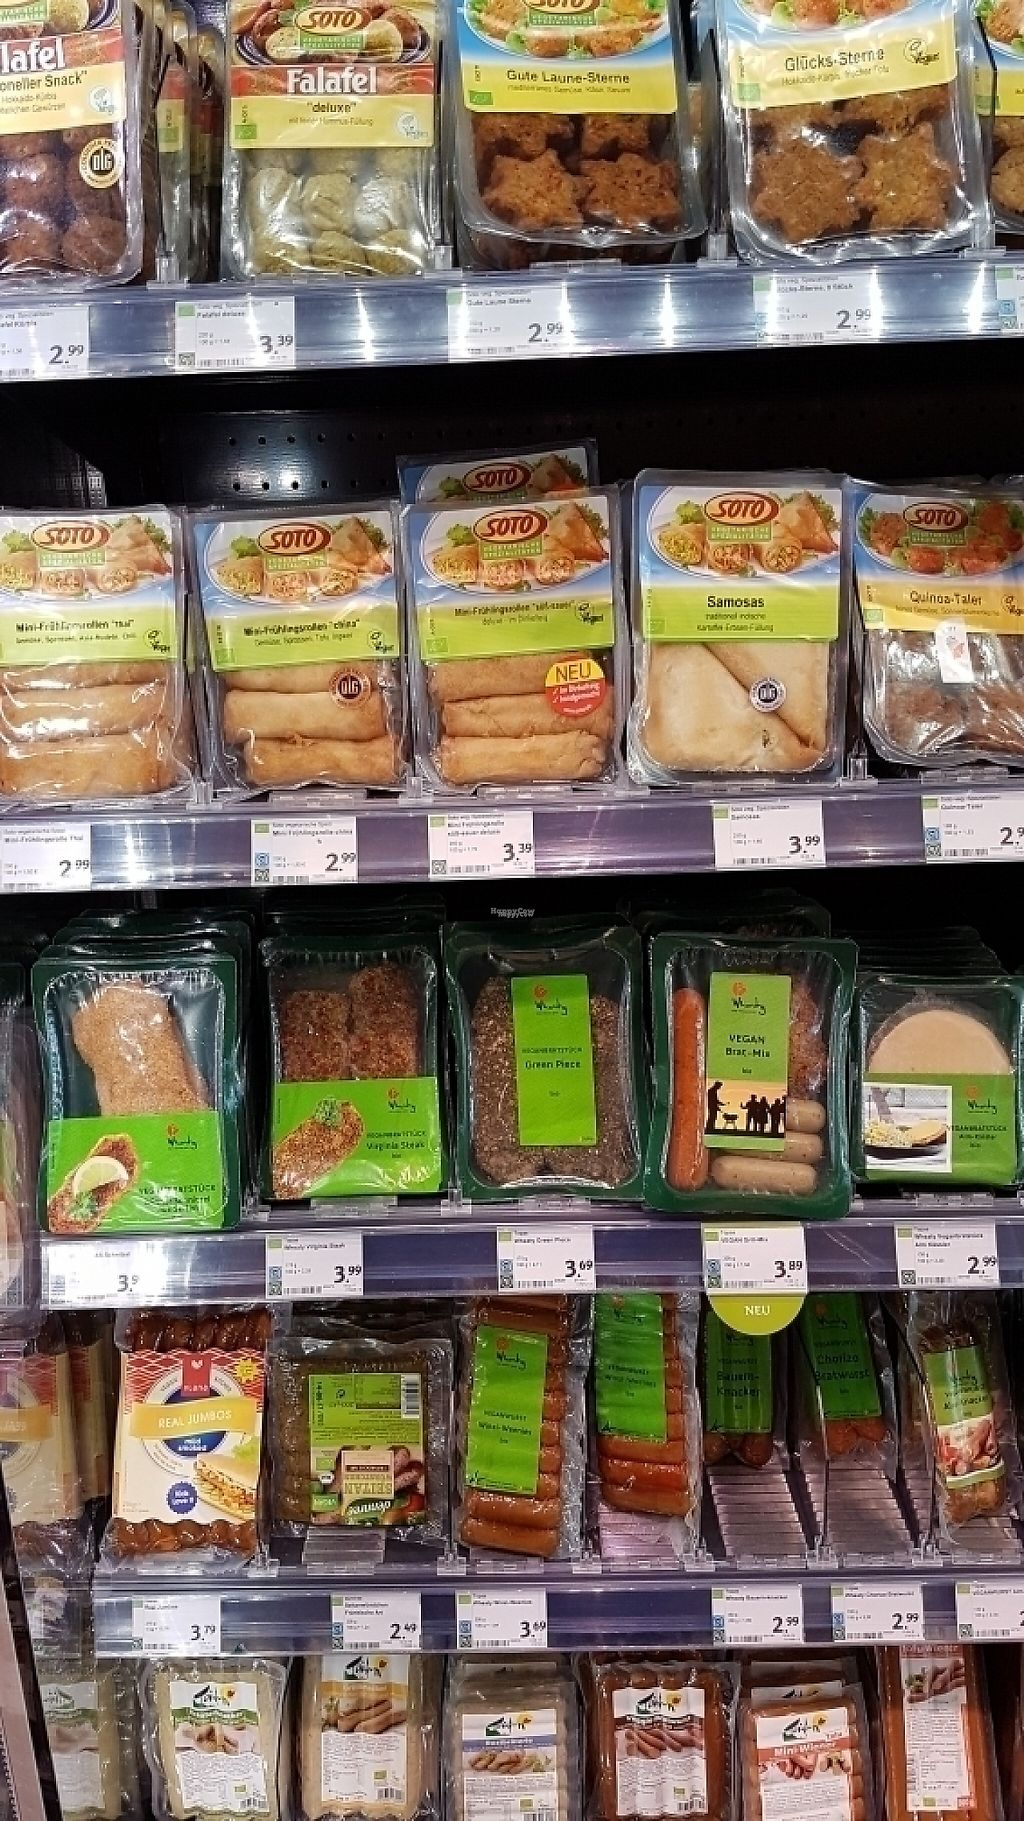 """Photo of denn's biomarkt  by <a href=""""/members/profile/morgangdfp"""">morgangdfp</a> <br/>even more vegan and vegetarian things  <br/> April 21, 2017  - <a href='/contact/abuse/image/90777/250455'>Report</a>"""